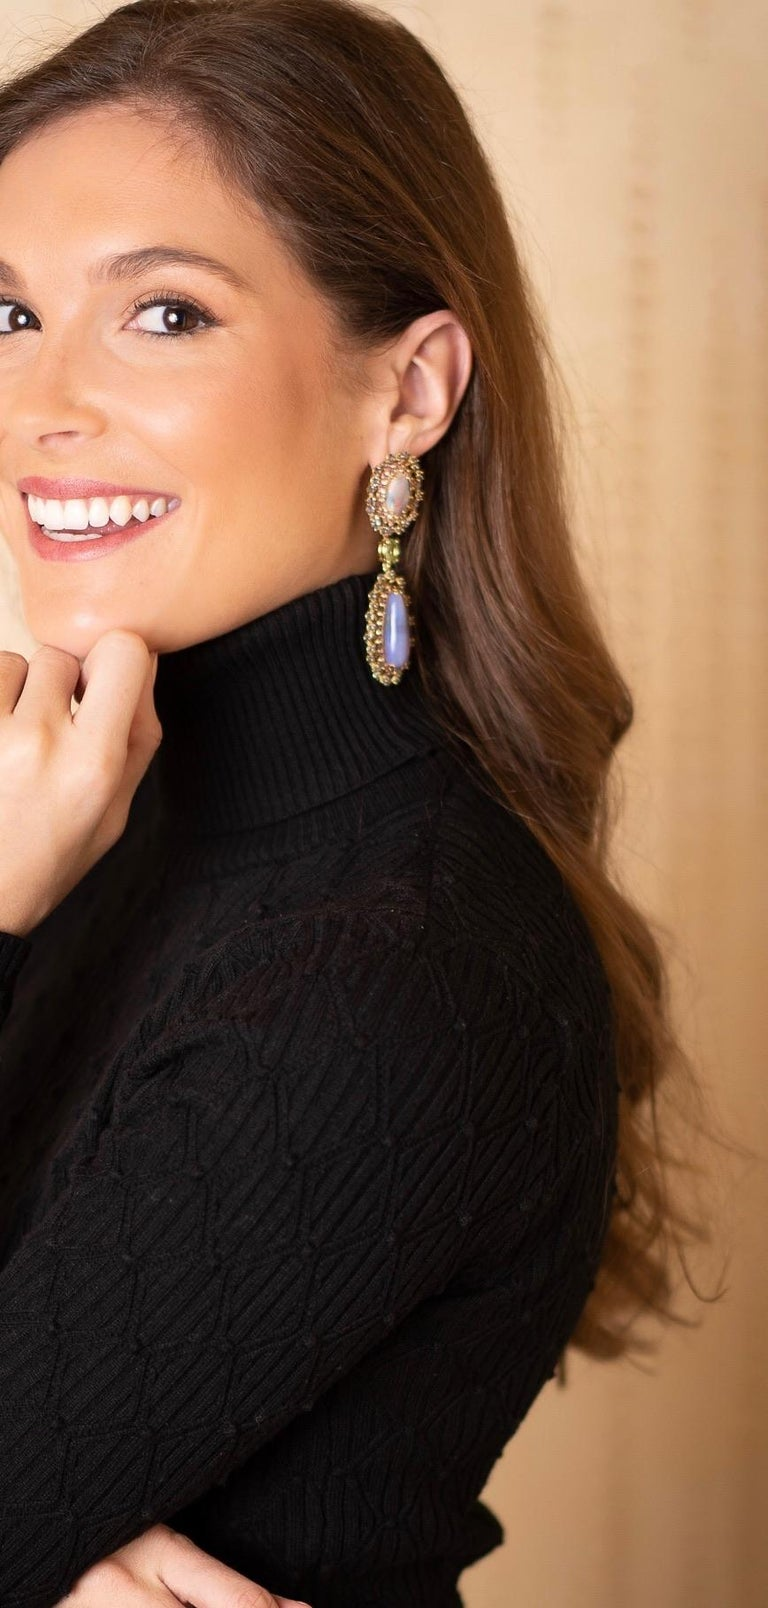 Contemporary Opal, Tourmaline and Multicolored Spinel Earrings by Andrew Glassford For Sale